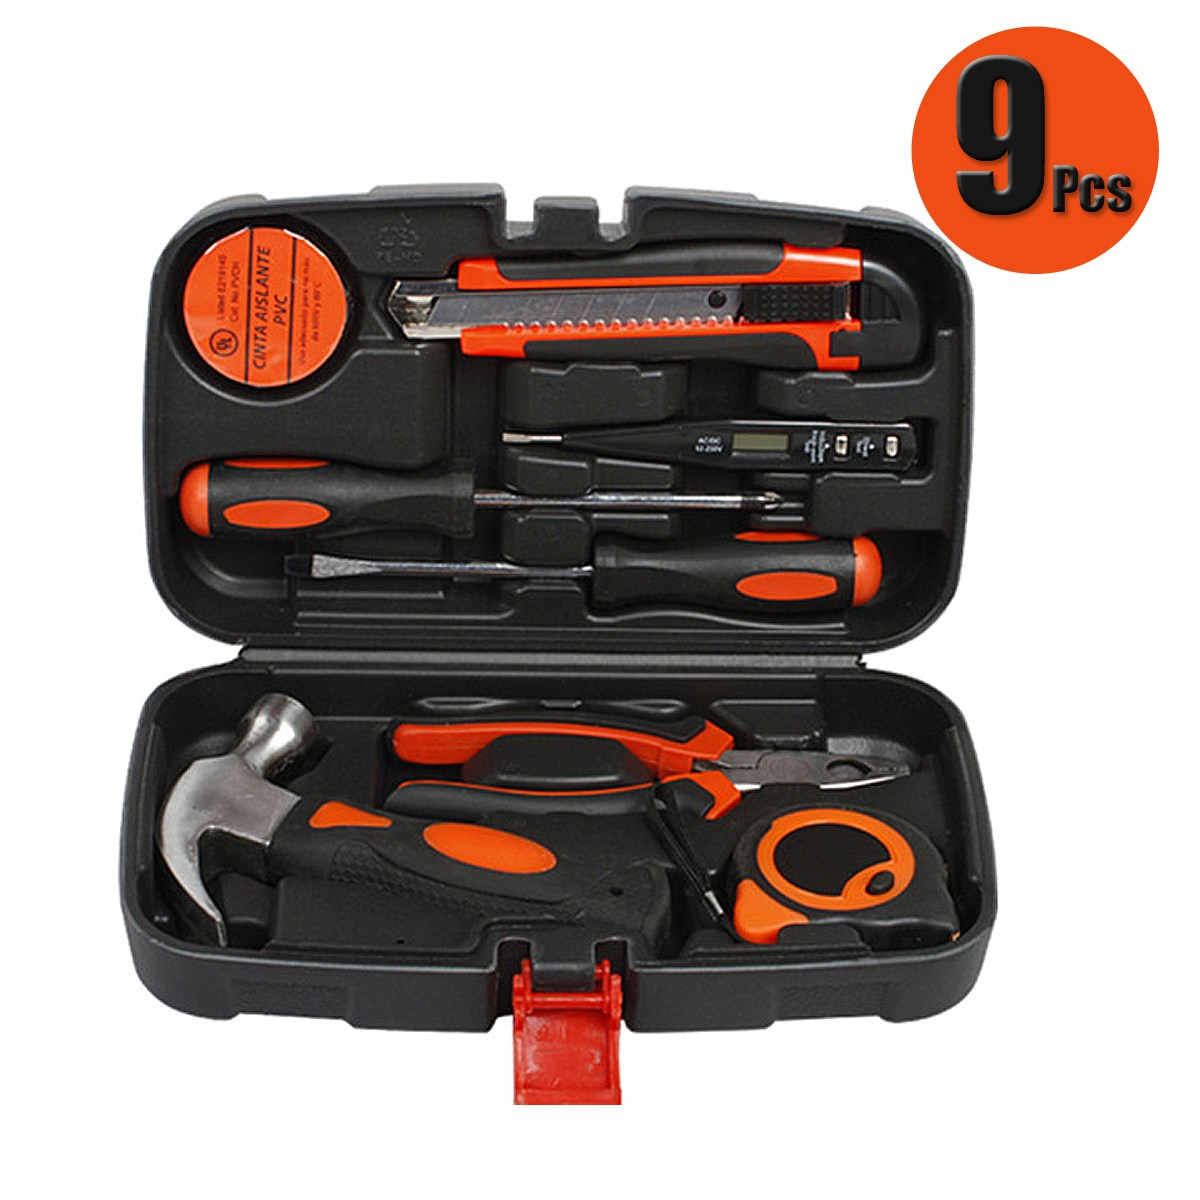 9Pcs Repair Hardware Instrumental Sets universal for Home Tool Kits Multi-functional Tool for Electrician 2018 100pcs maintenance repairing hardware instrumental sets robust lightweight multifunctional hand tools kits fast delivery